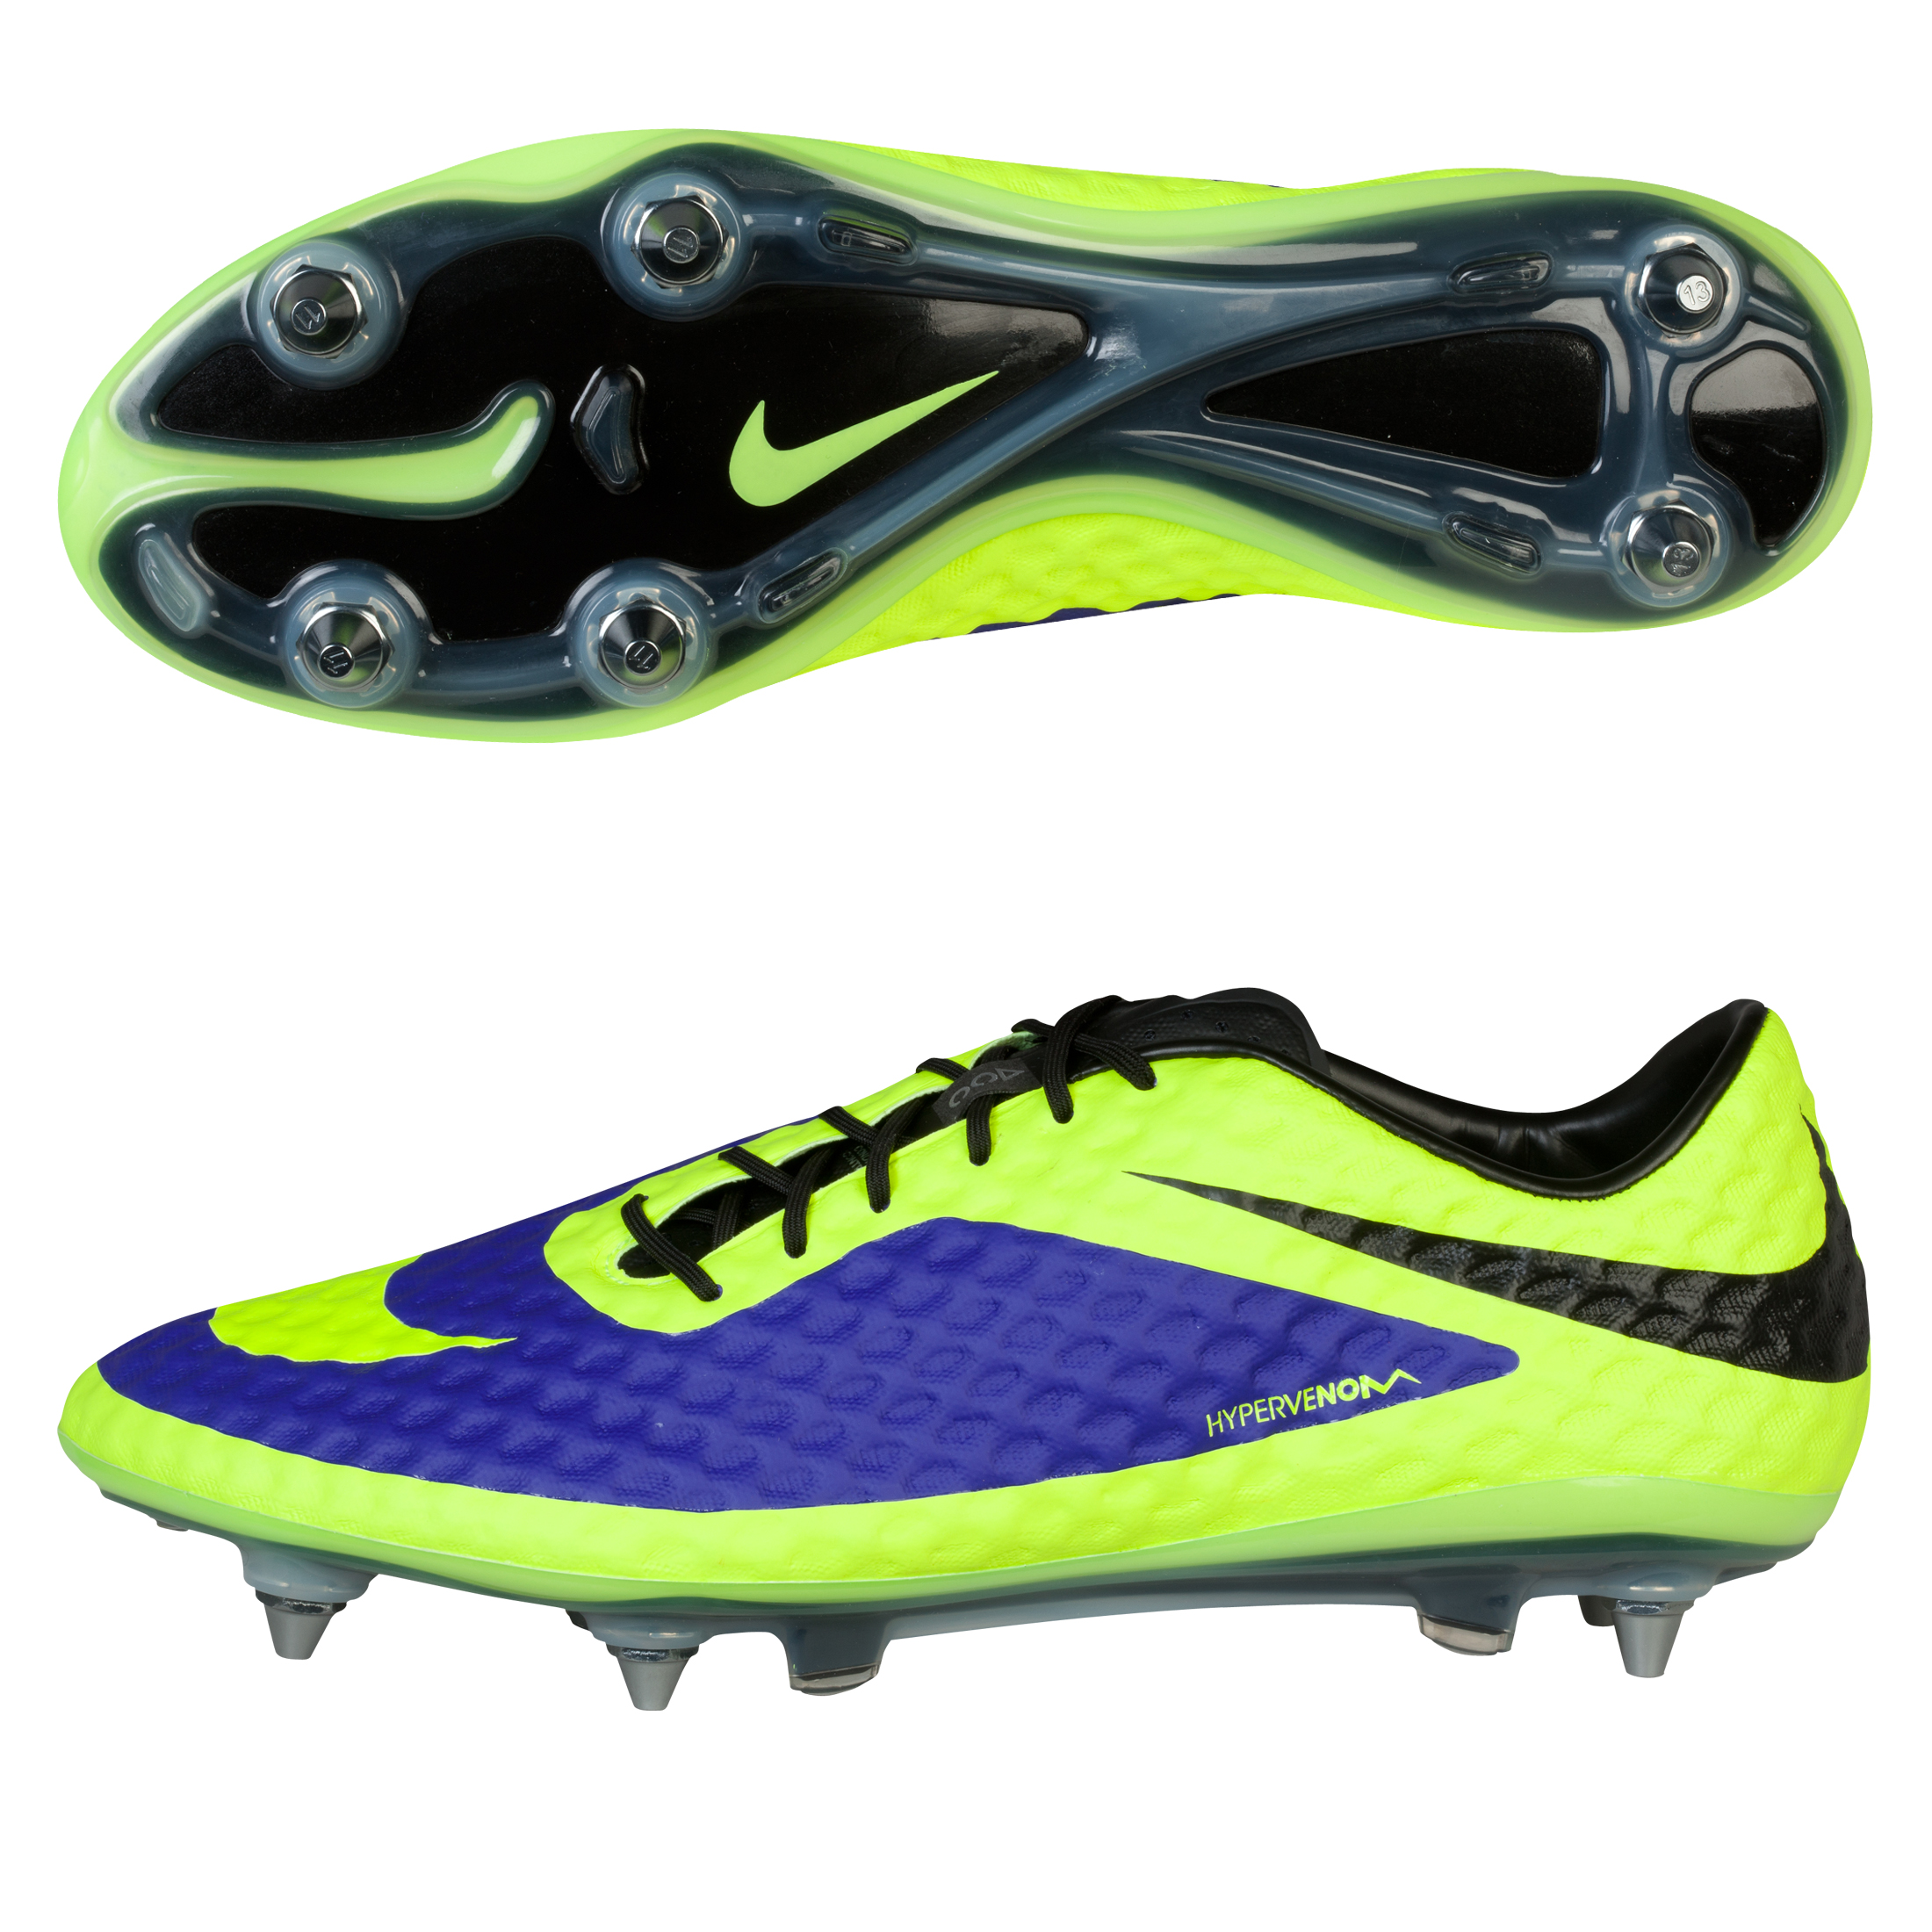 Nike Hypervenom Phantom Soft Ground-Pro Football Boots-Electro Purple/Volt/Black Purple